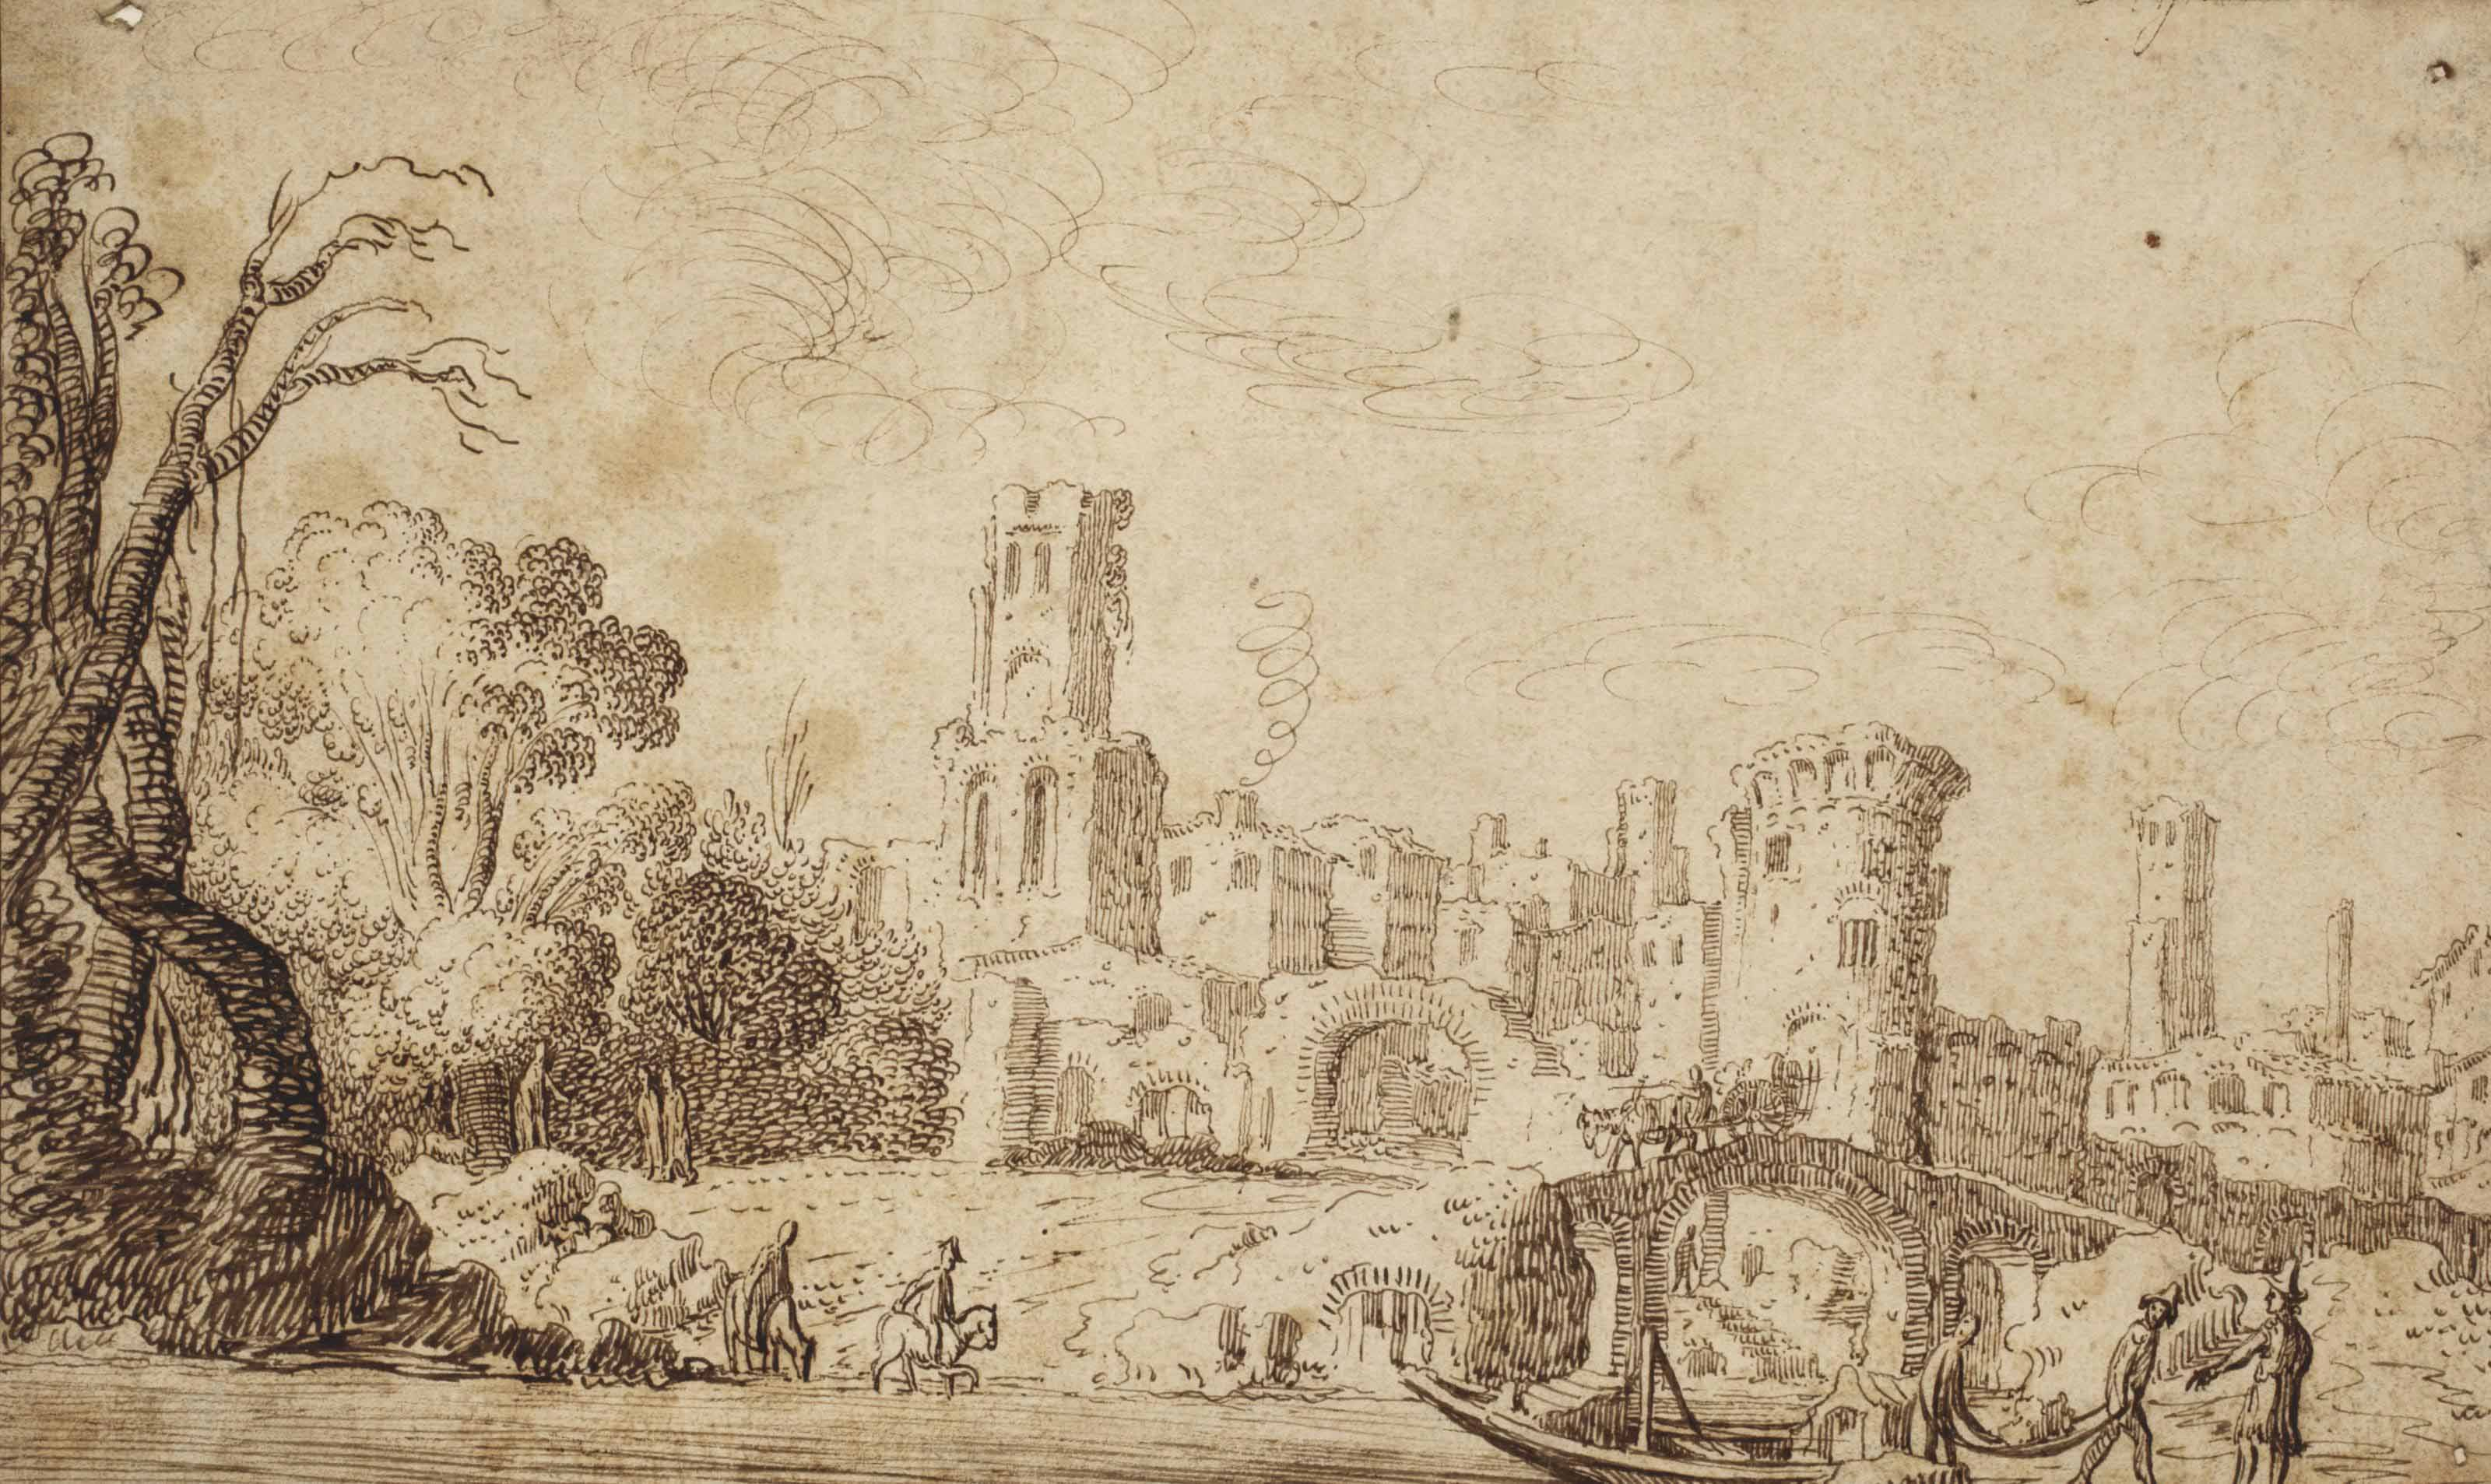 Figures in a river landscape with ruins